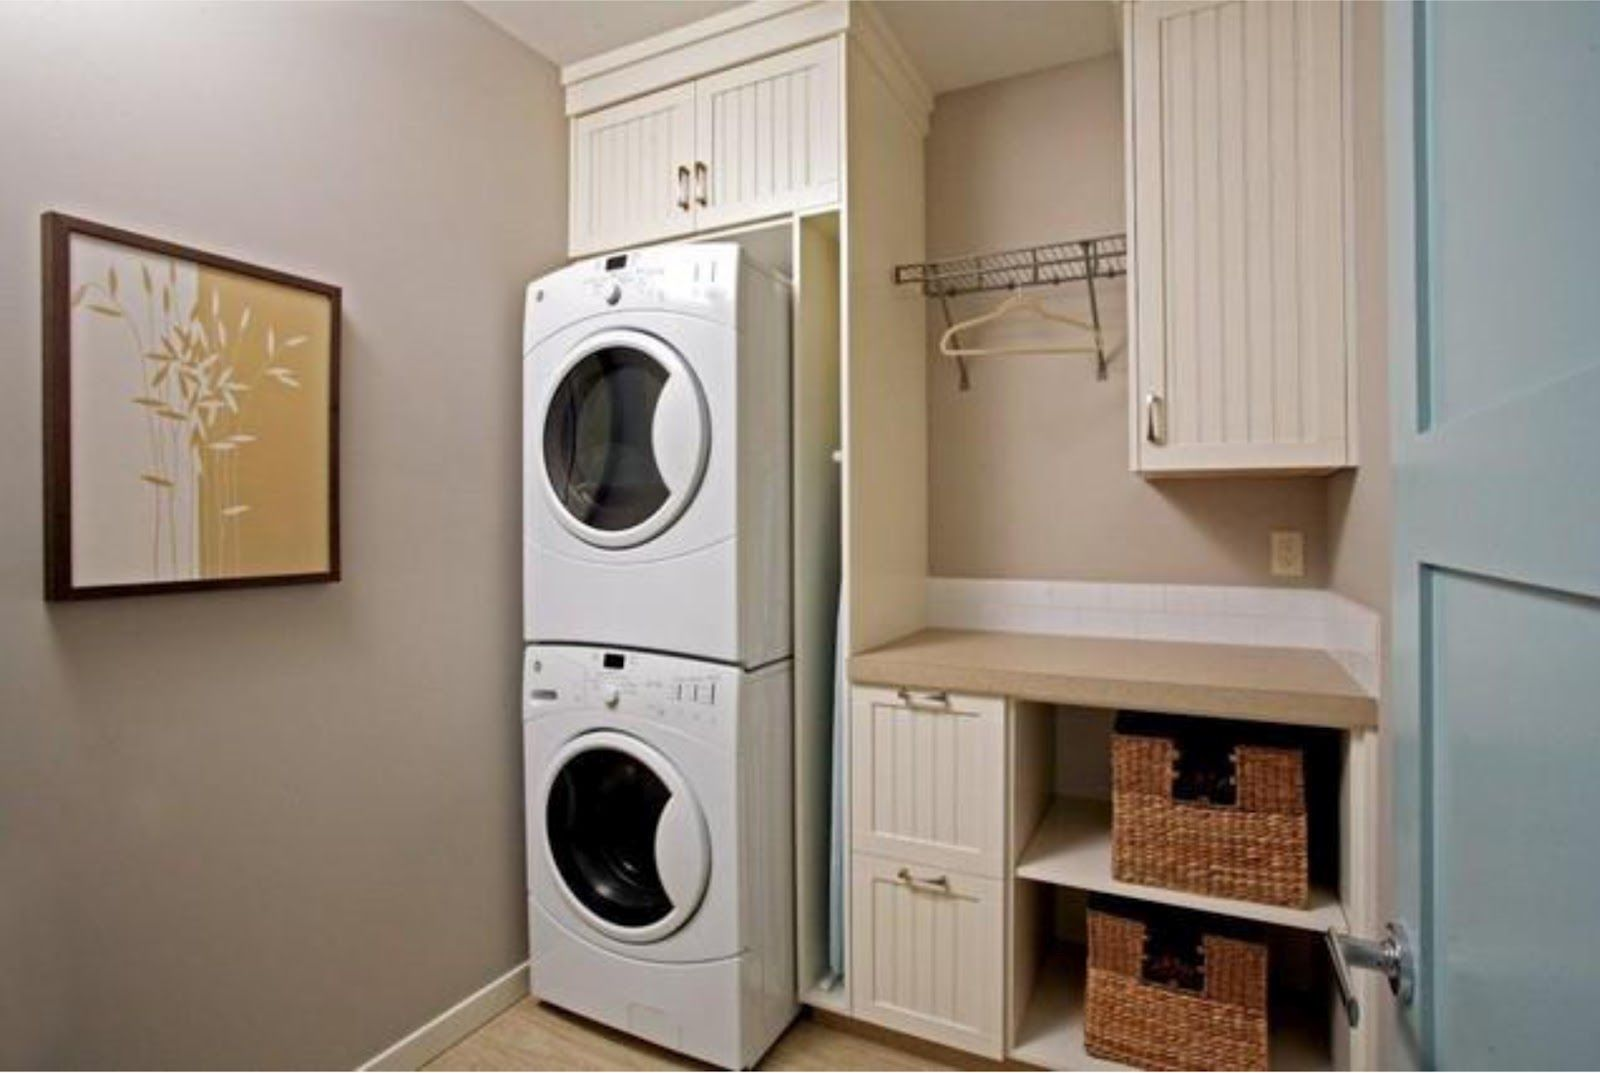 Work surface for washer and dryer - Stacked Washer And Dryer Laundry Layout Great For A Small Space I Like How There S A Cubby For The Ironing Board A Rod To Hang Clothes A Work Surface To